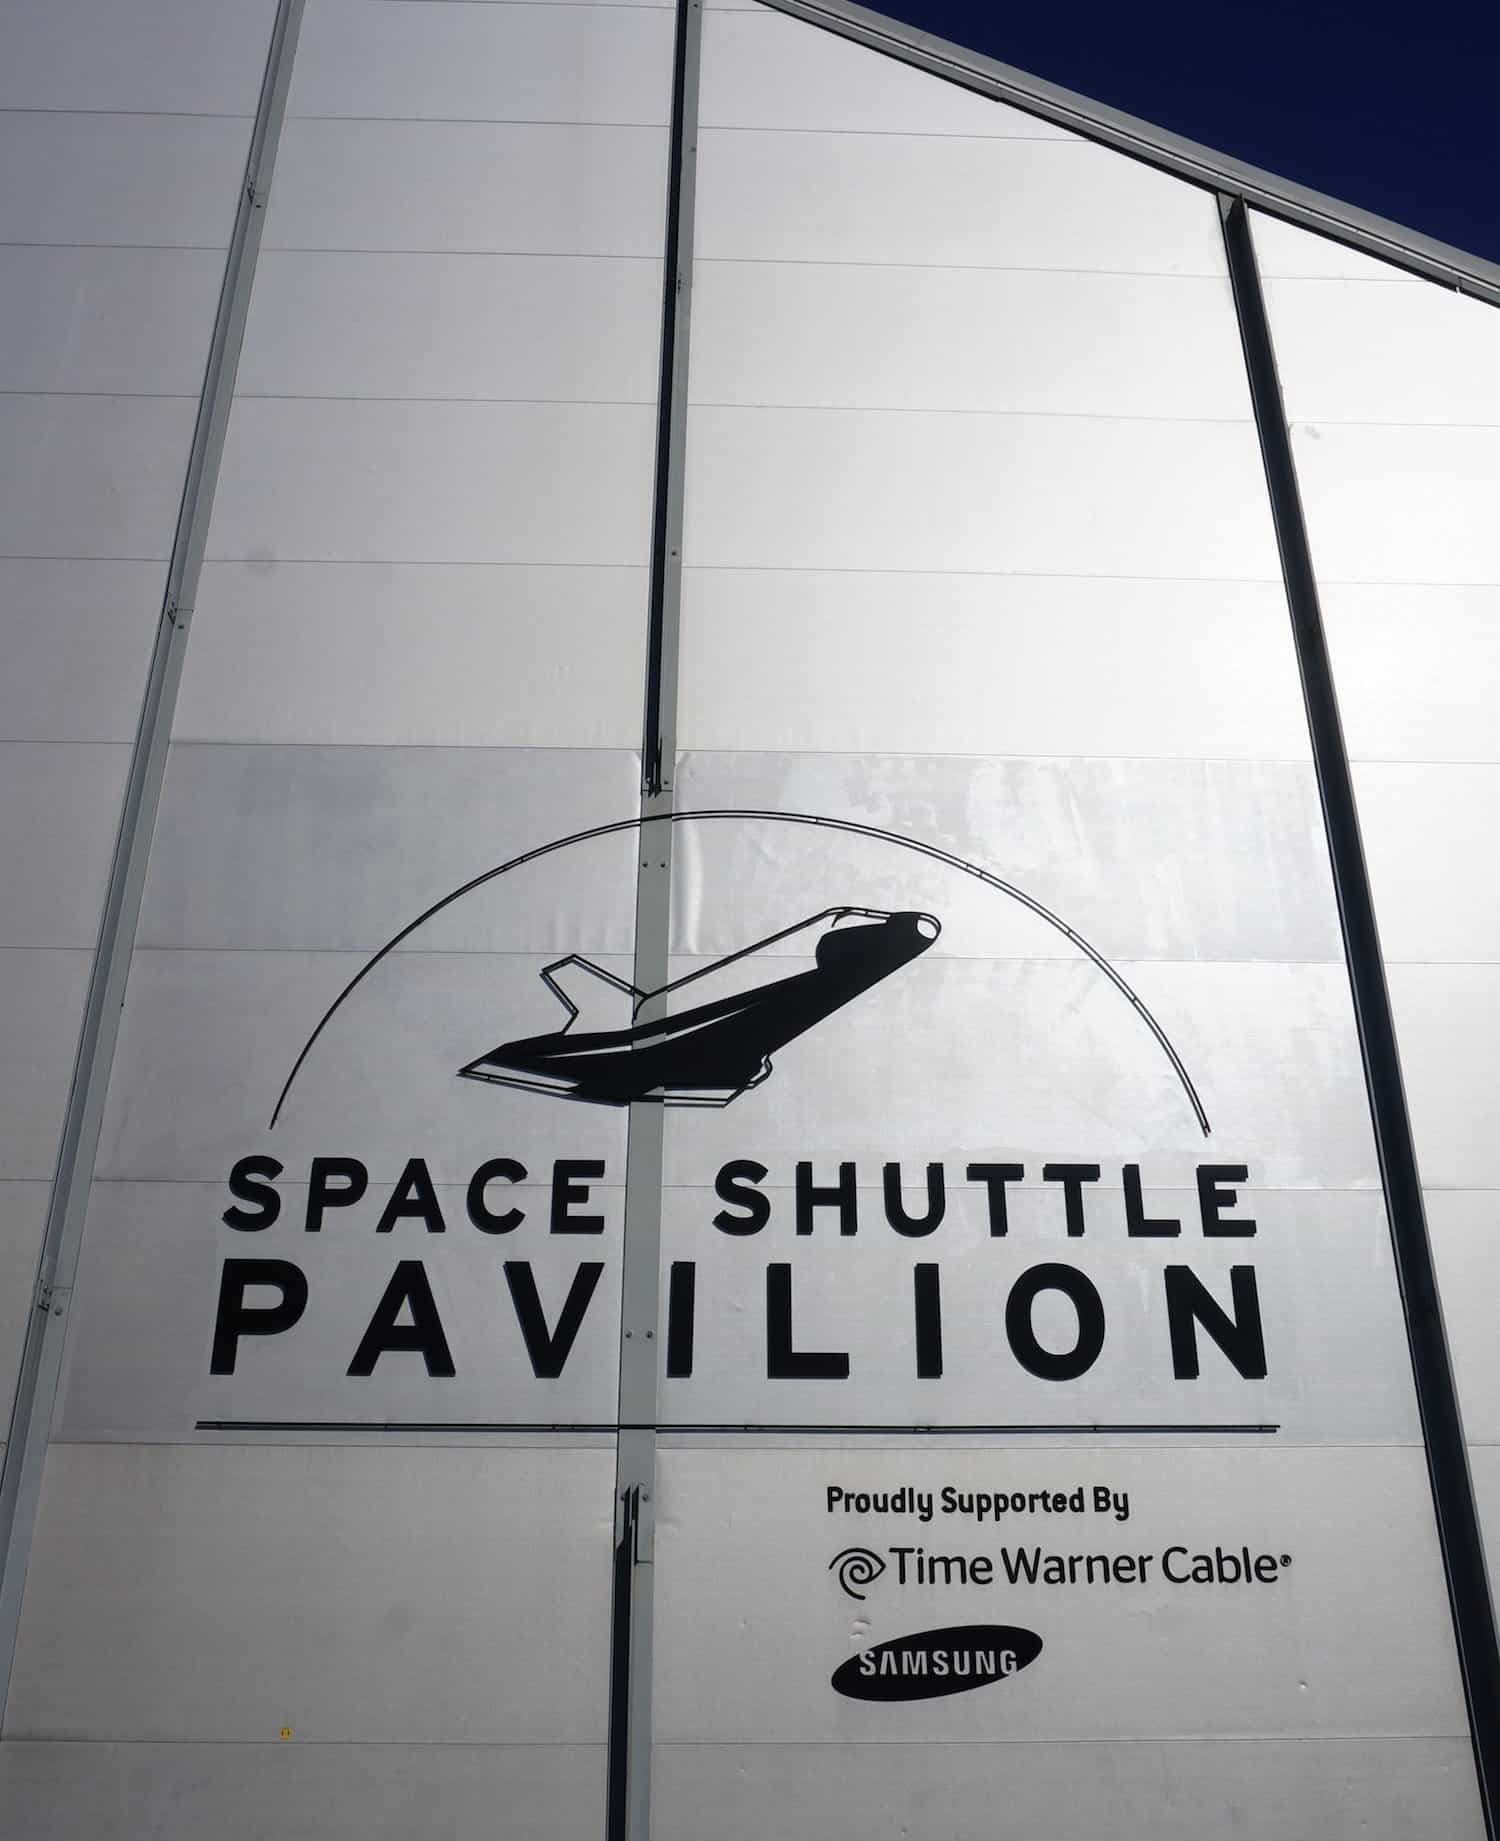 Space Shuttle Enterprise - Pavilion